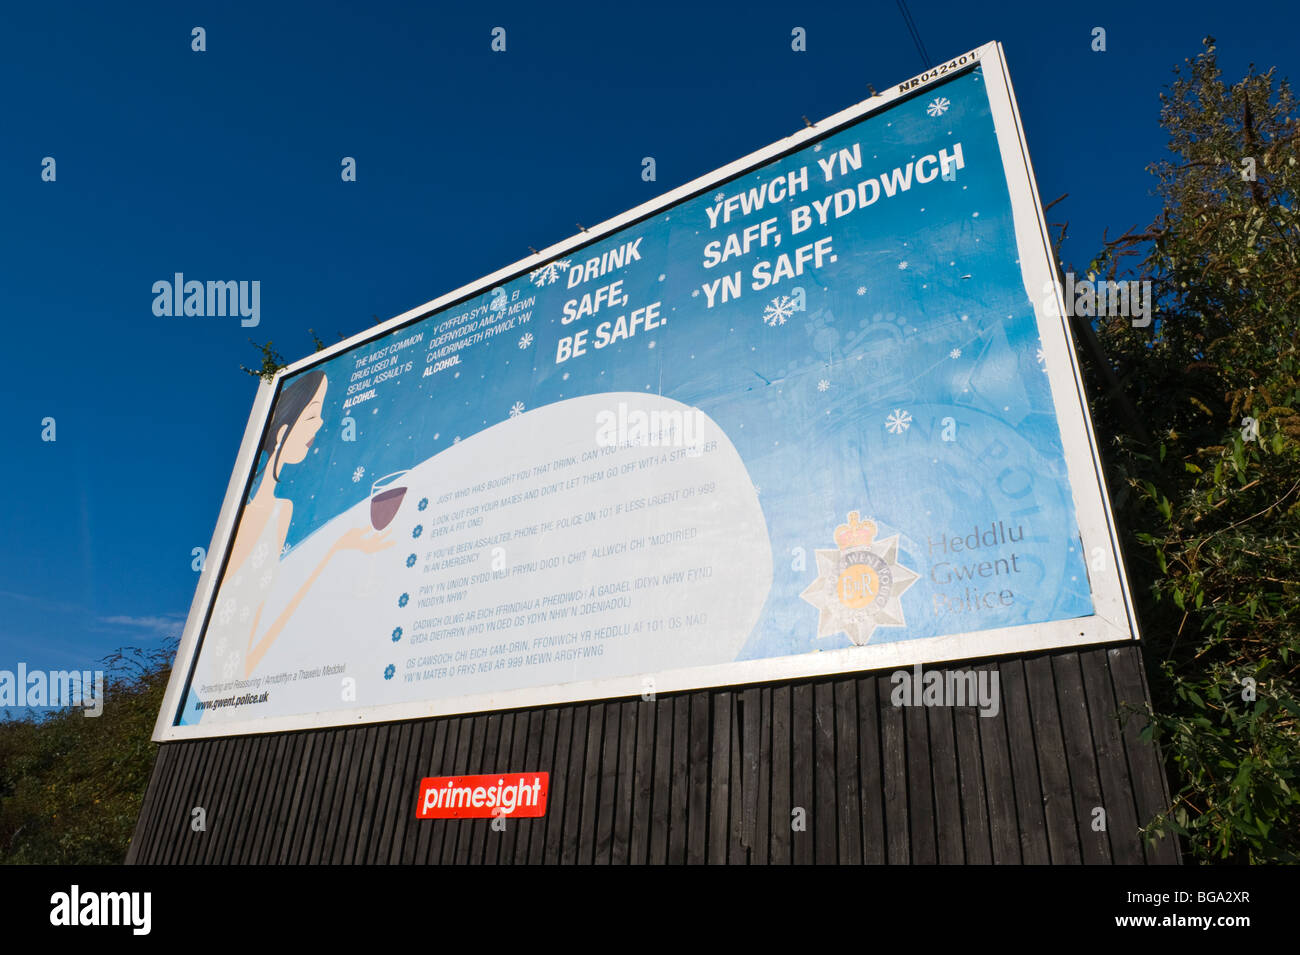 primesight billboard site featuring DRINK SAFE poster  Gwent Police drink drive campaignin Newport South Wales UK - Stock Image